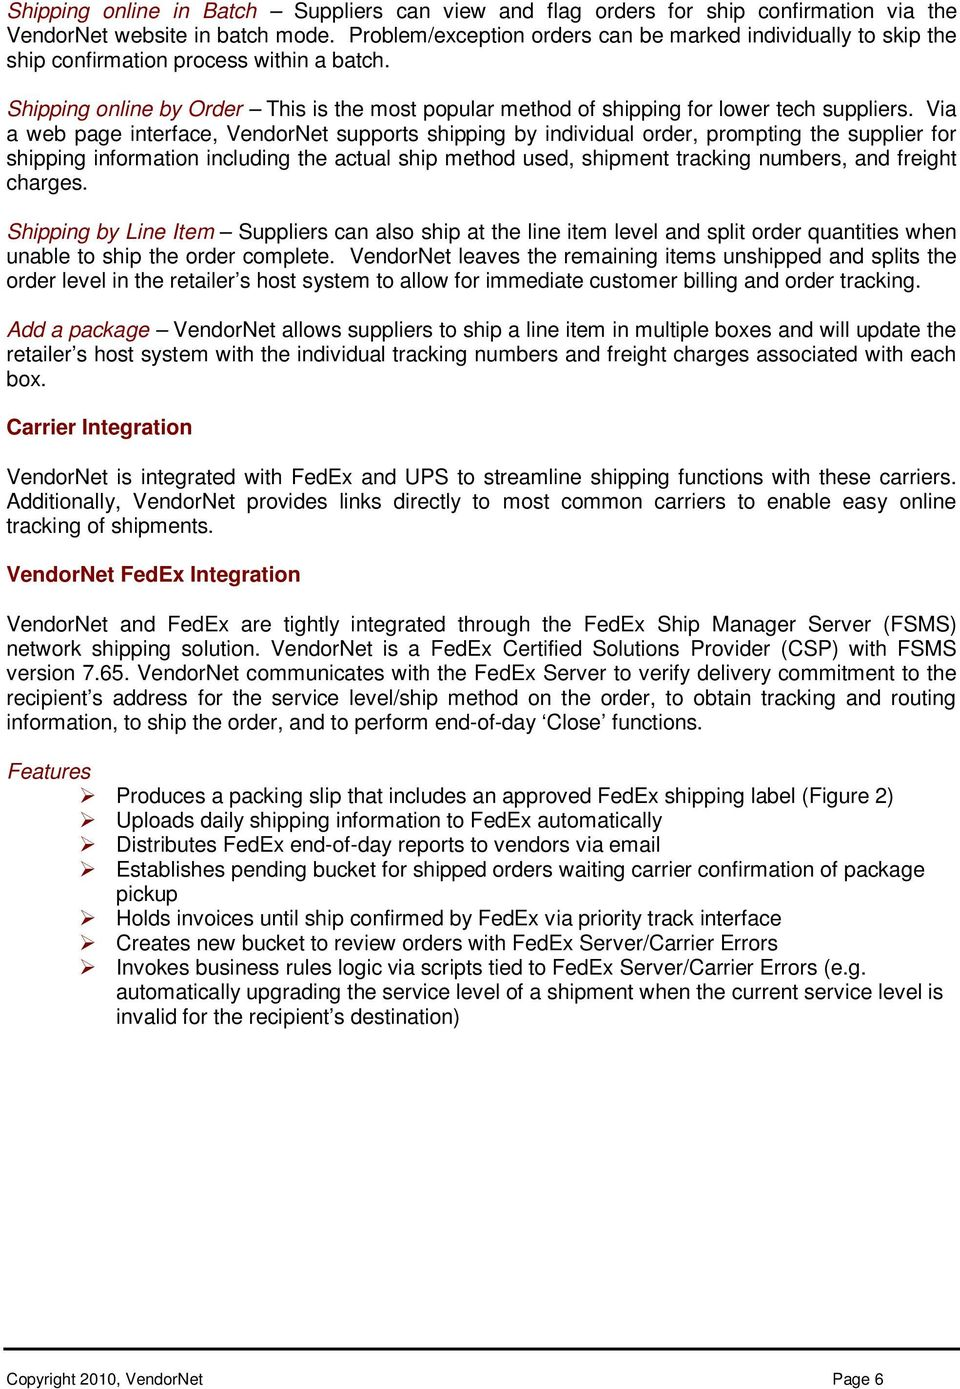 Modern Shipping Information Template Pattern Example Resume Ideas - Shipping manifest template